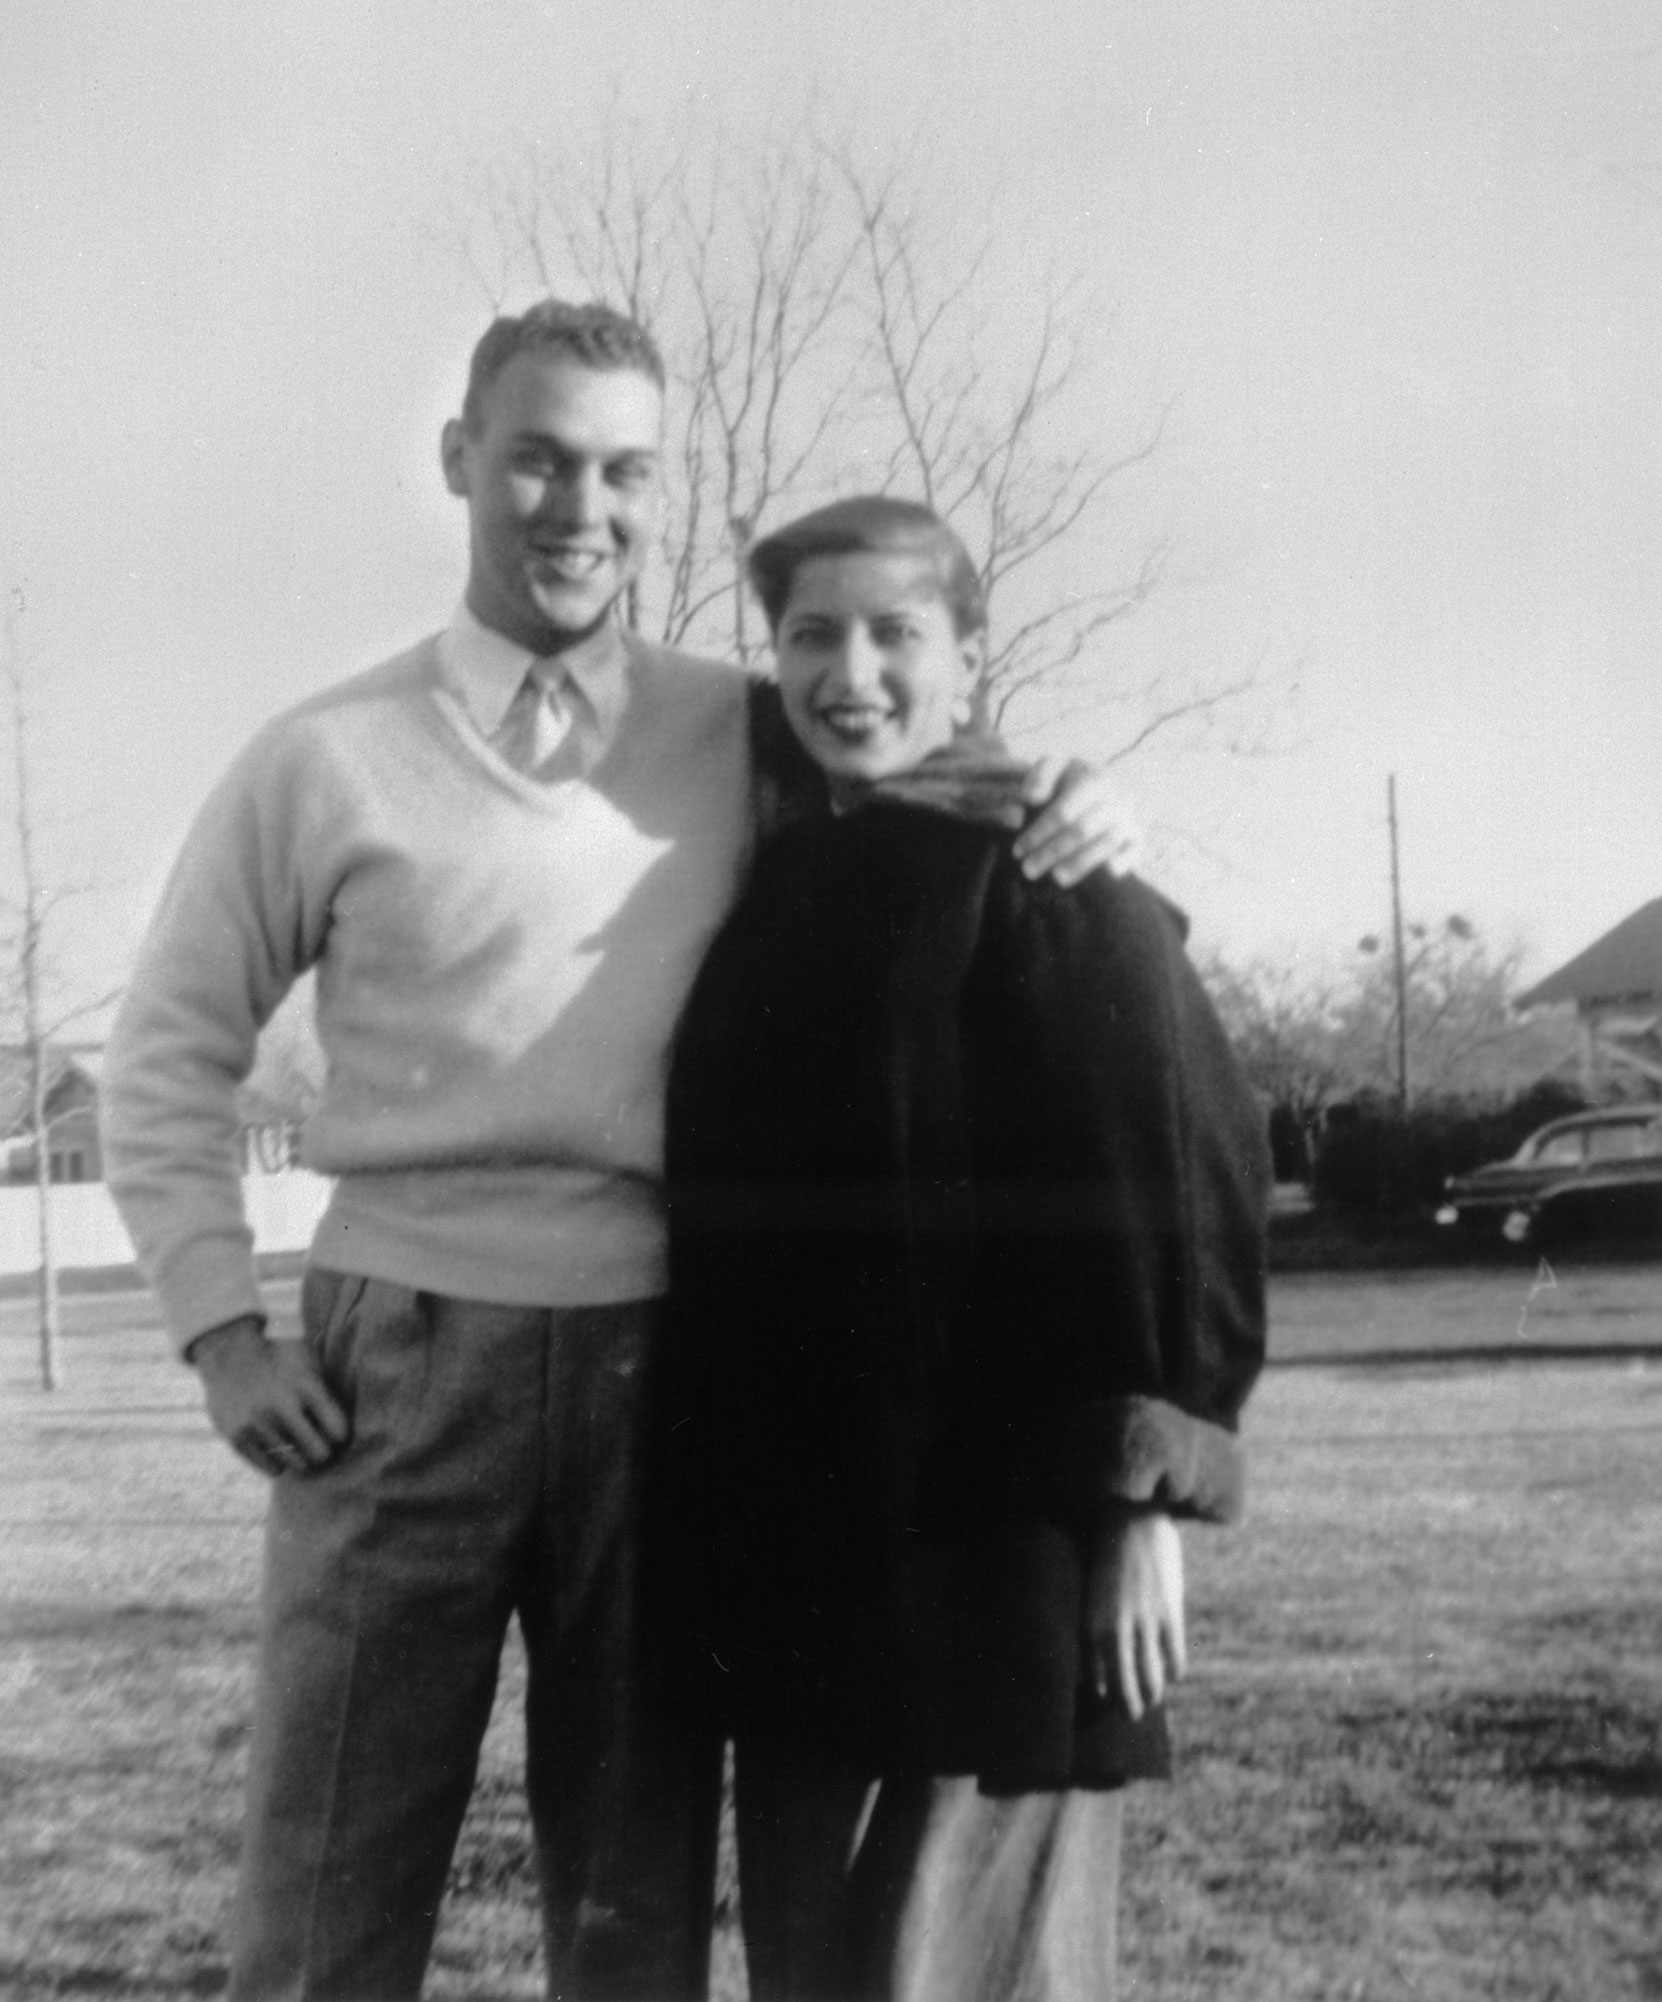 Martin D. Ginsburg and Ruth Bader Ginsburg in the fall of 1954 when Martin was serving in the Army.